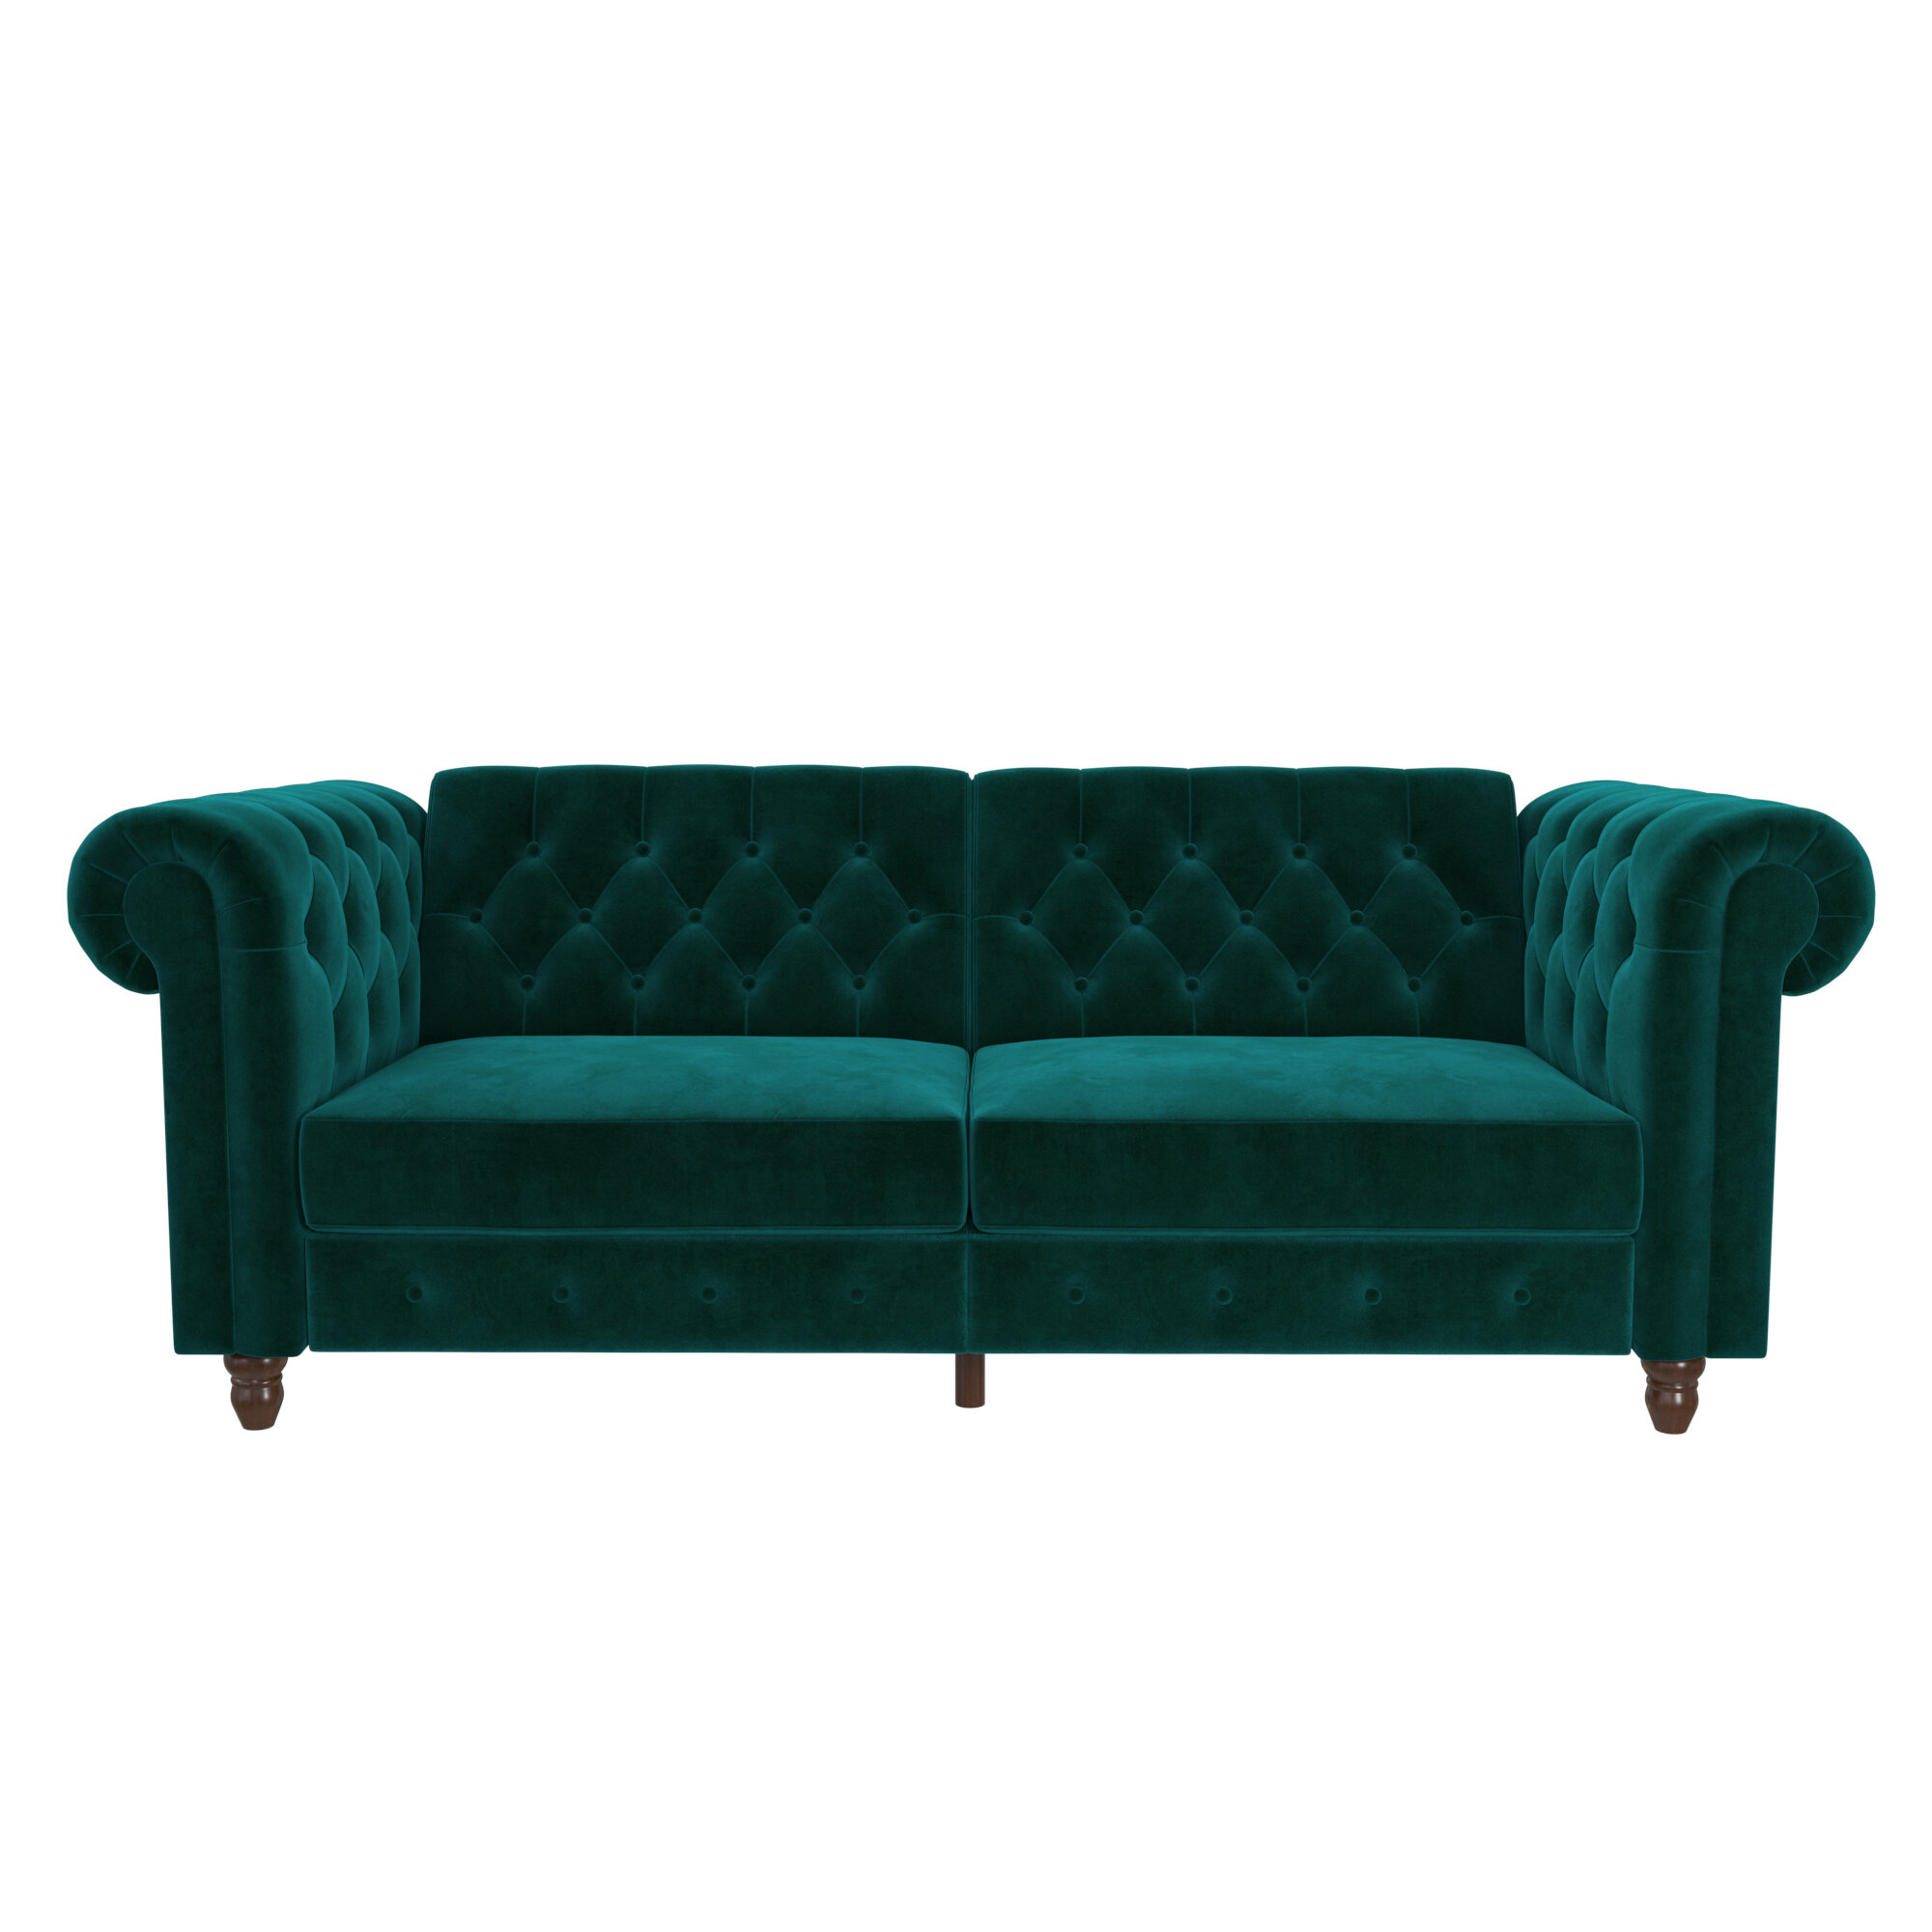 Aranza Chesterfield Convertible Sofa & Reviews | Joss & Main